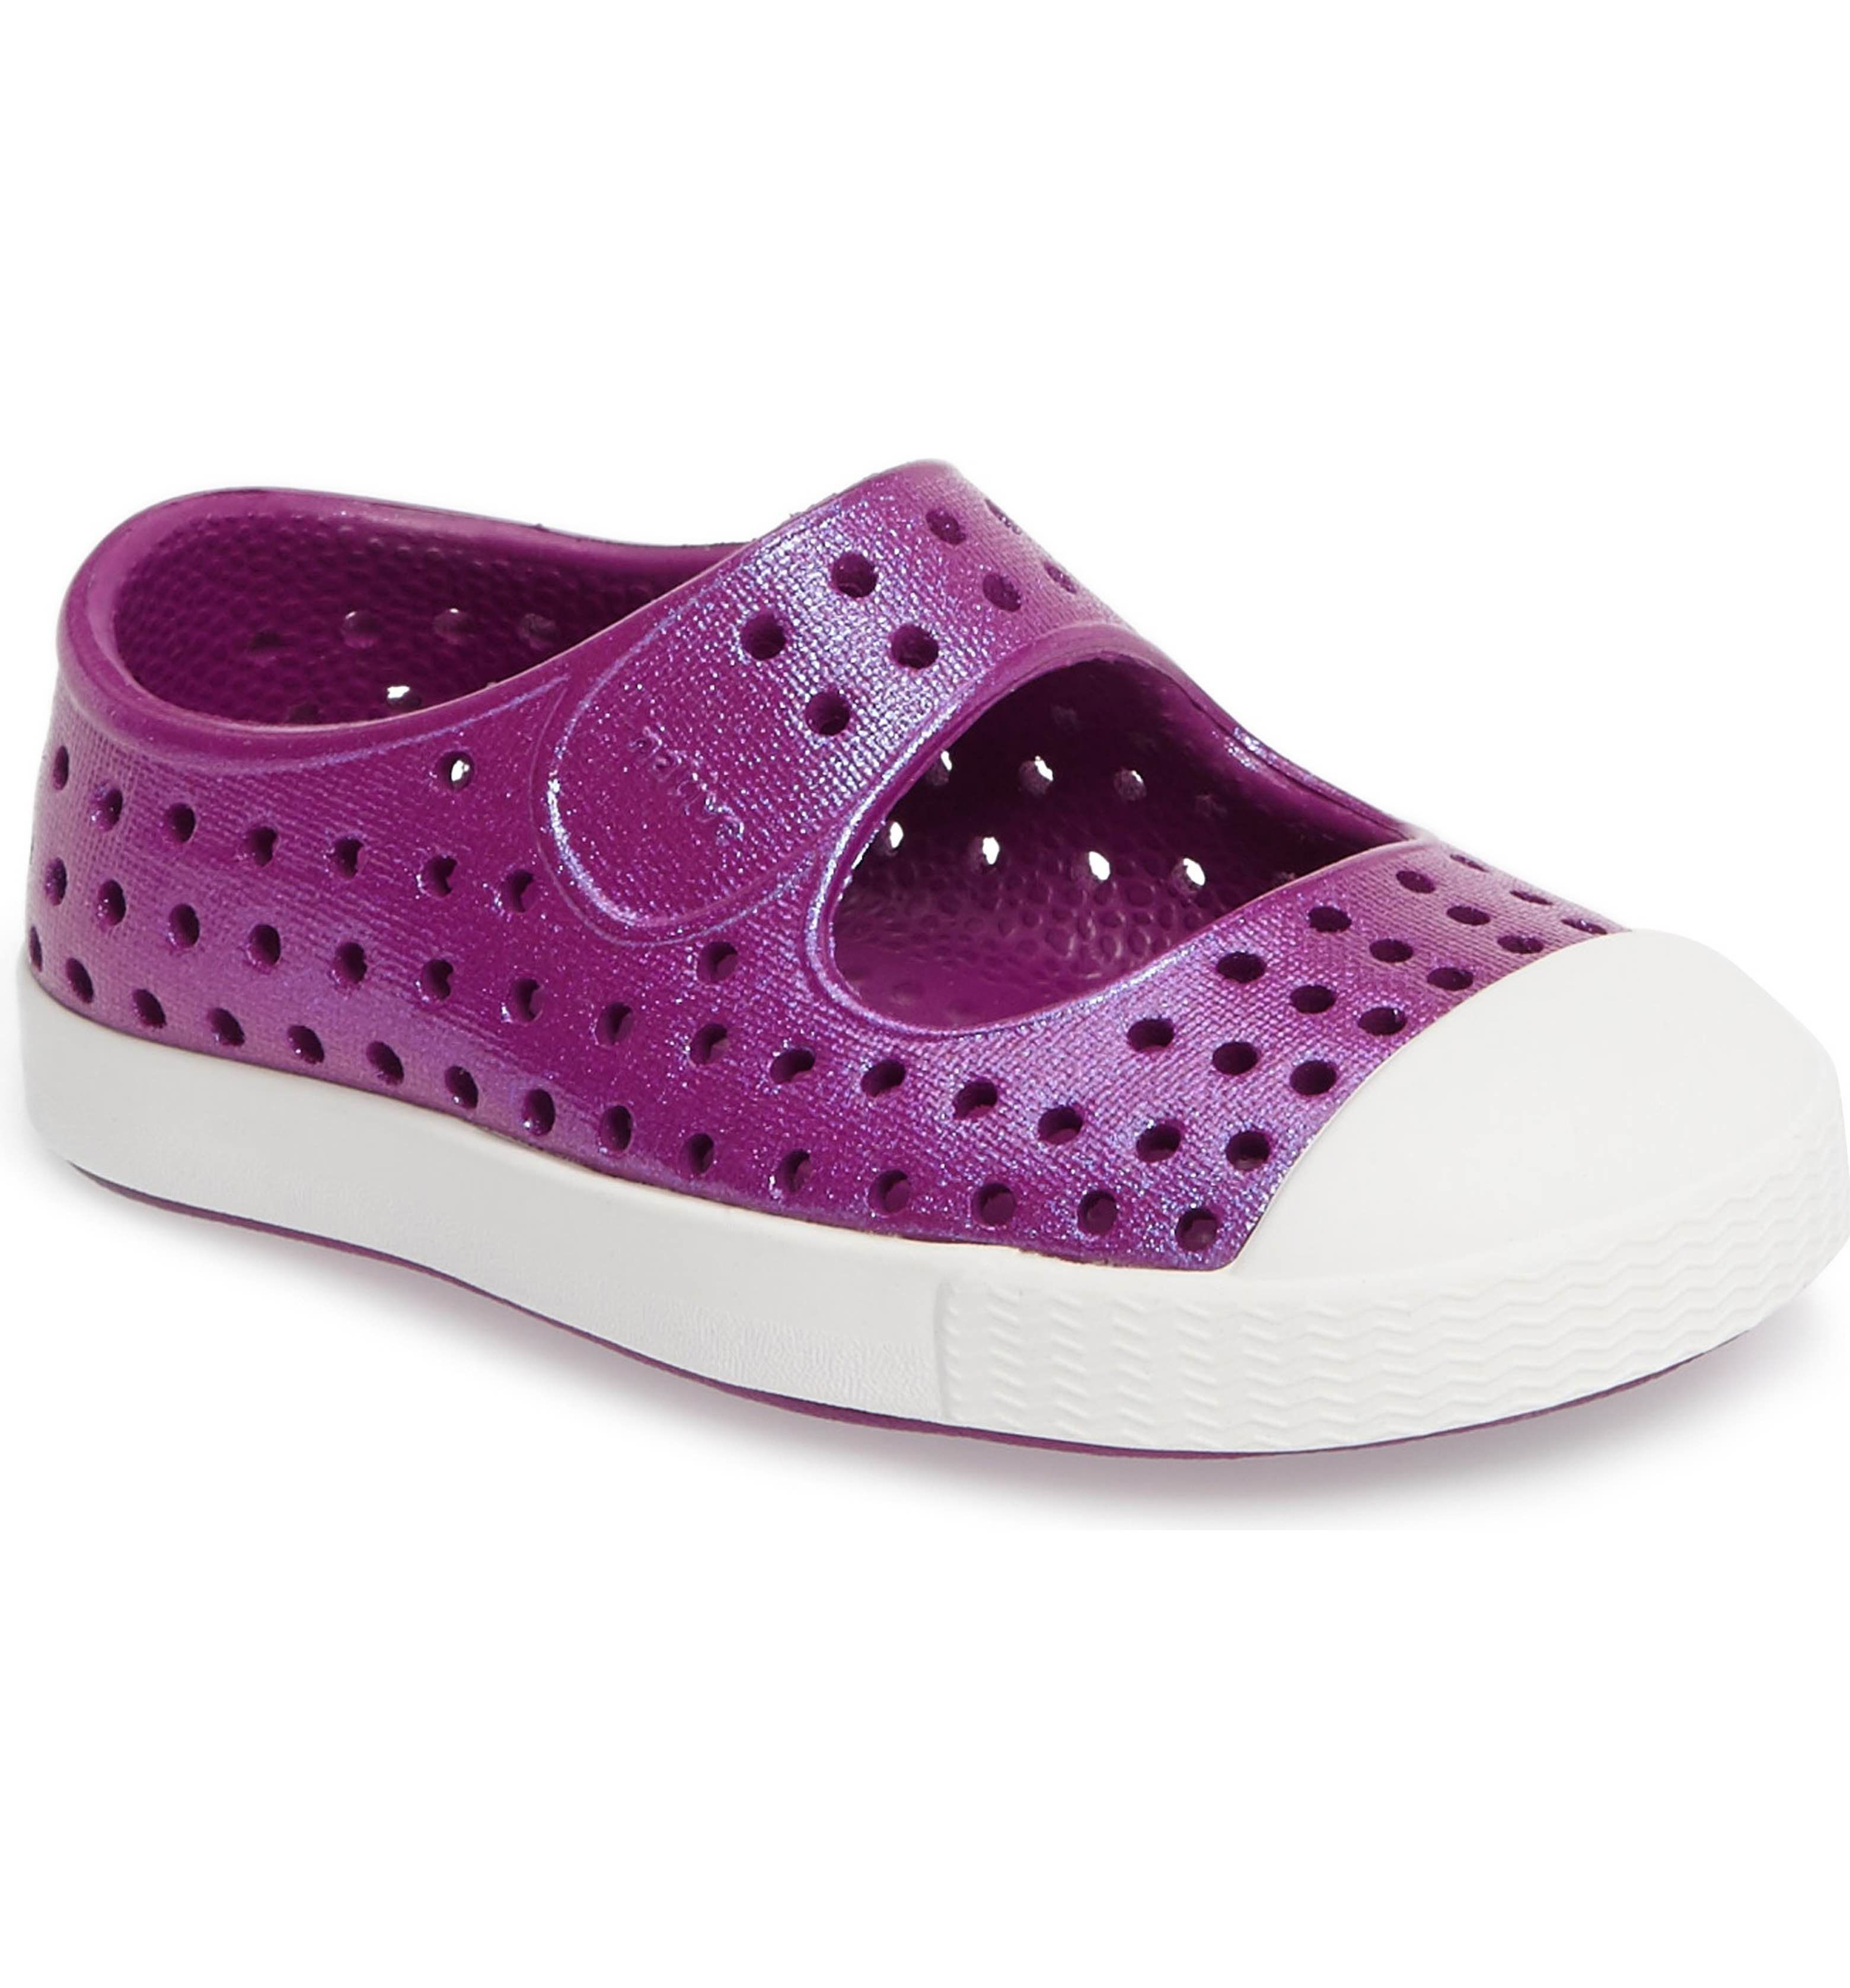 6069bc0092f Main Image - Native Shoes Juniper Perforated Mary Jane (Baby, Walker,  Toddler & Little Kid)